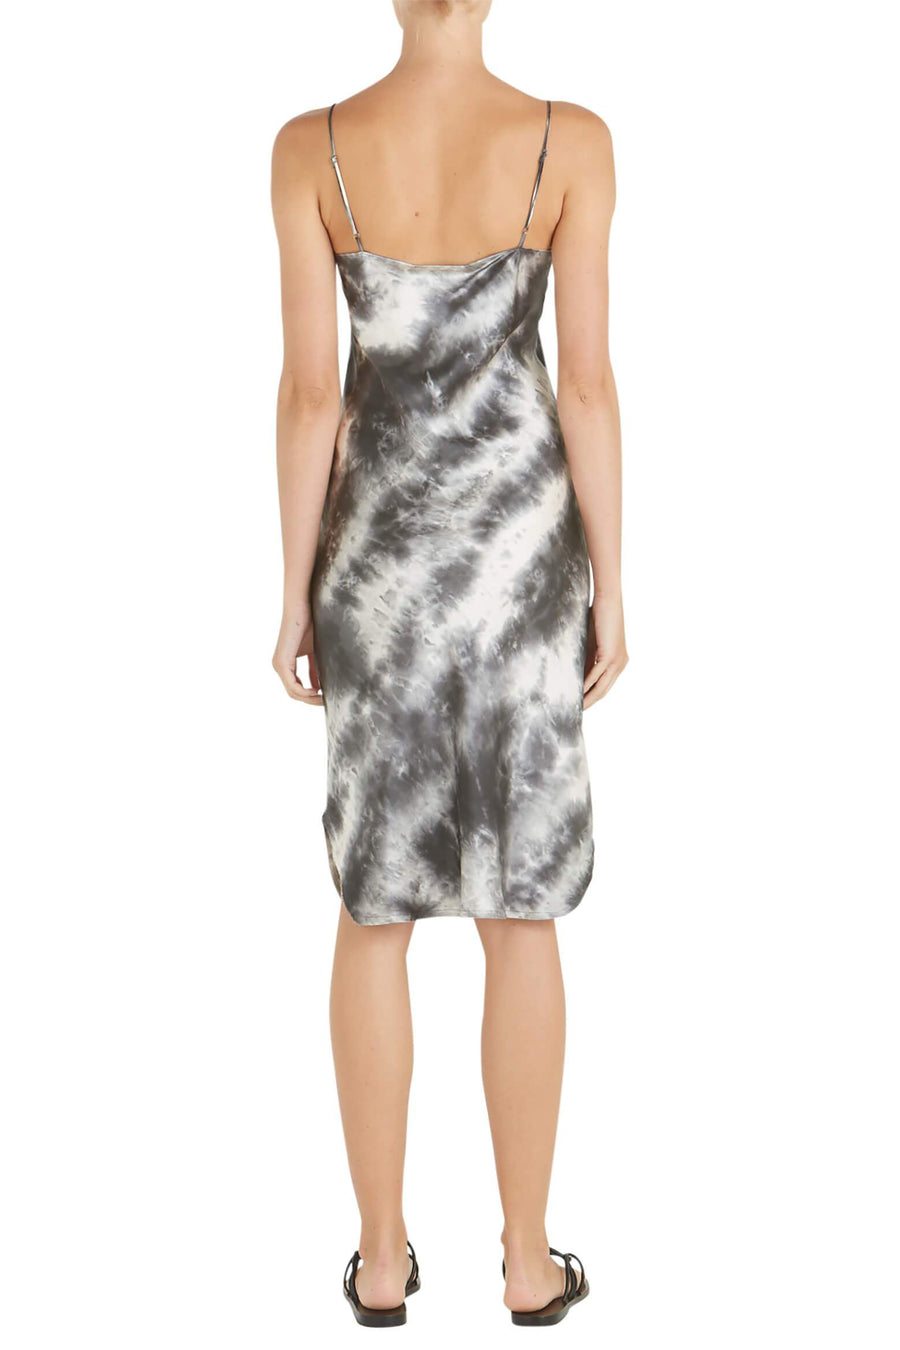 Nili Lotan Short Cami Dress in Gunmetal Tie Dye from The New Trend